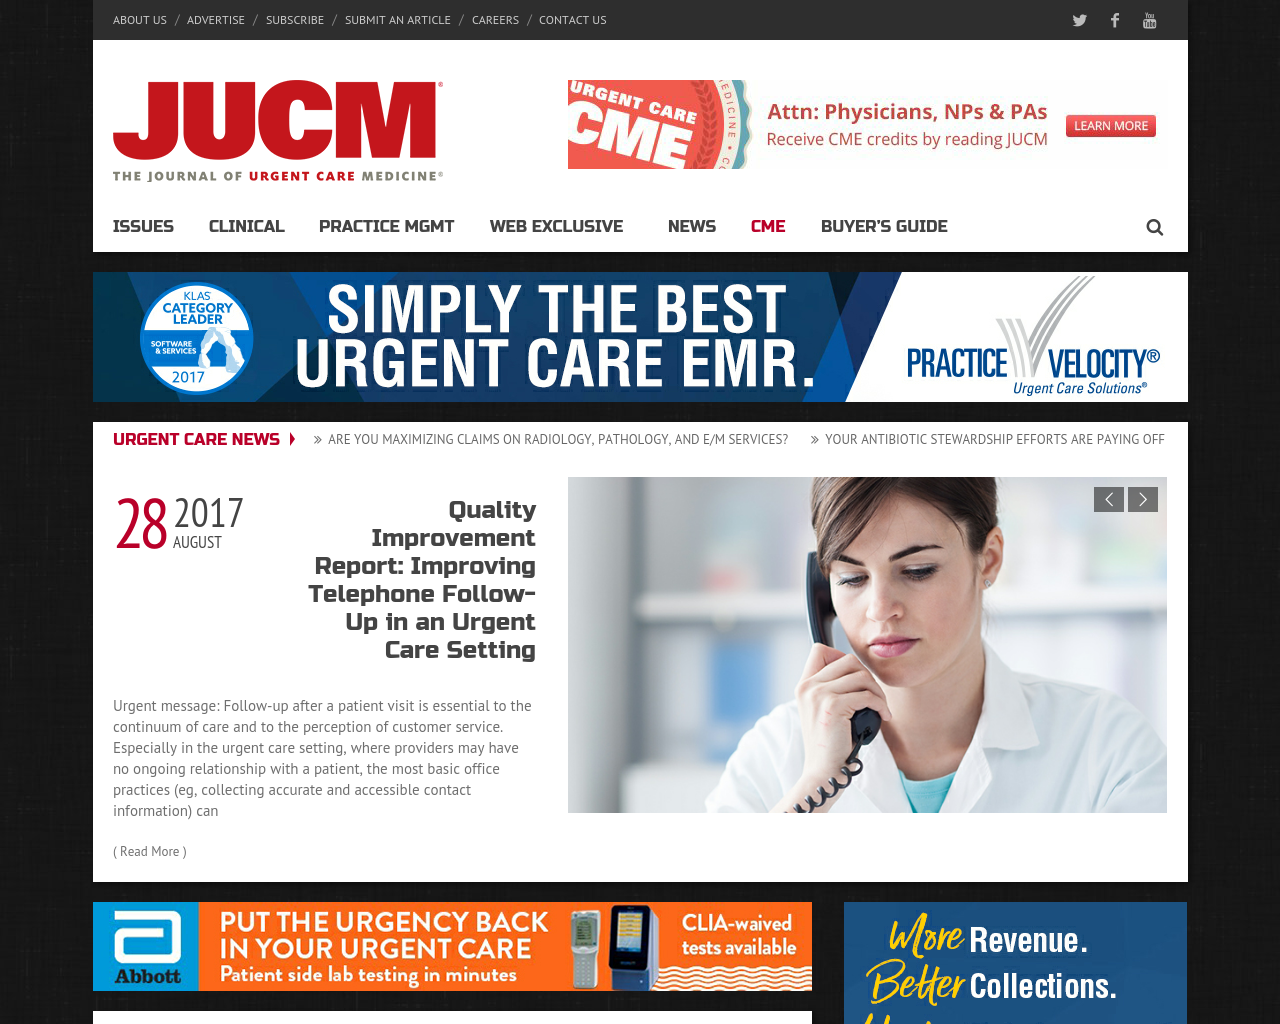 JUCM-The-Journal-Of-Urgent-Care-Medicine-Advertising-Reviews-Pricing